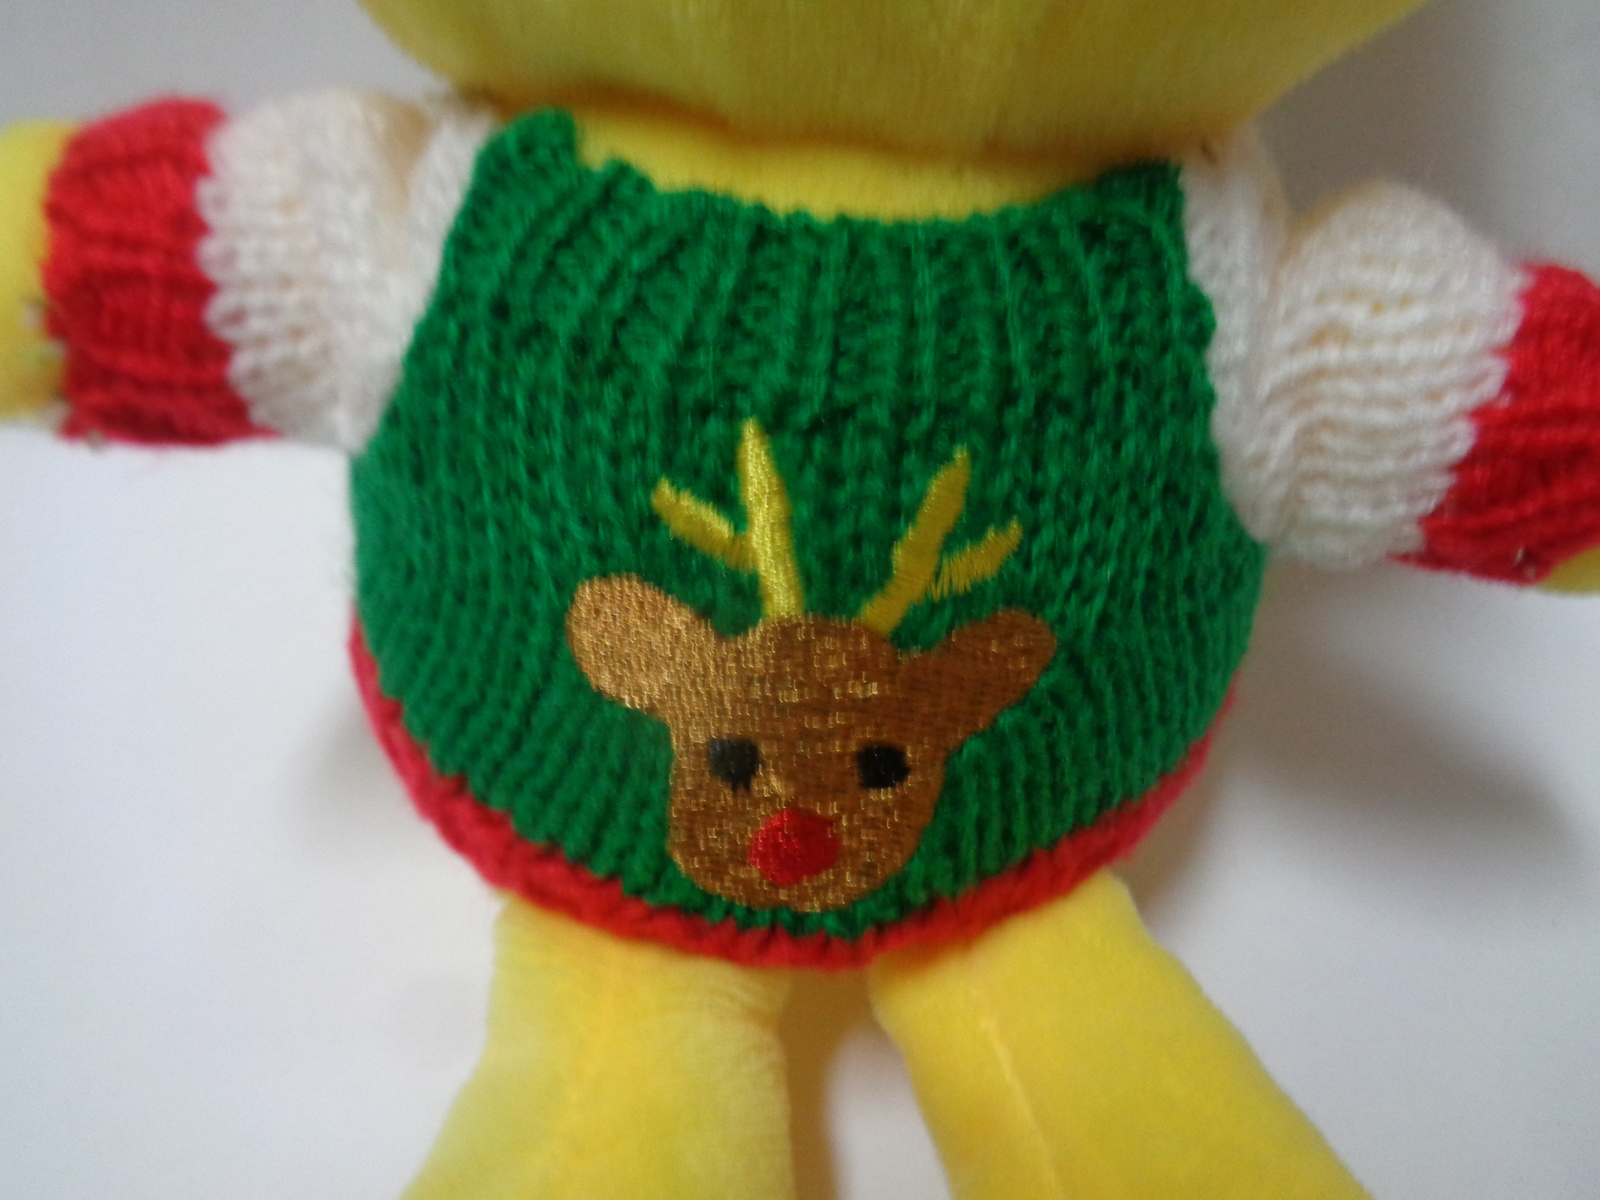 Emojeez Smiley Face Ugly Sweater Plush Doll NWT Holidazed Pals Special Edition